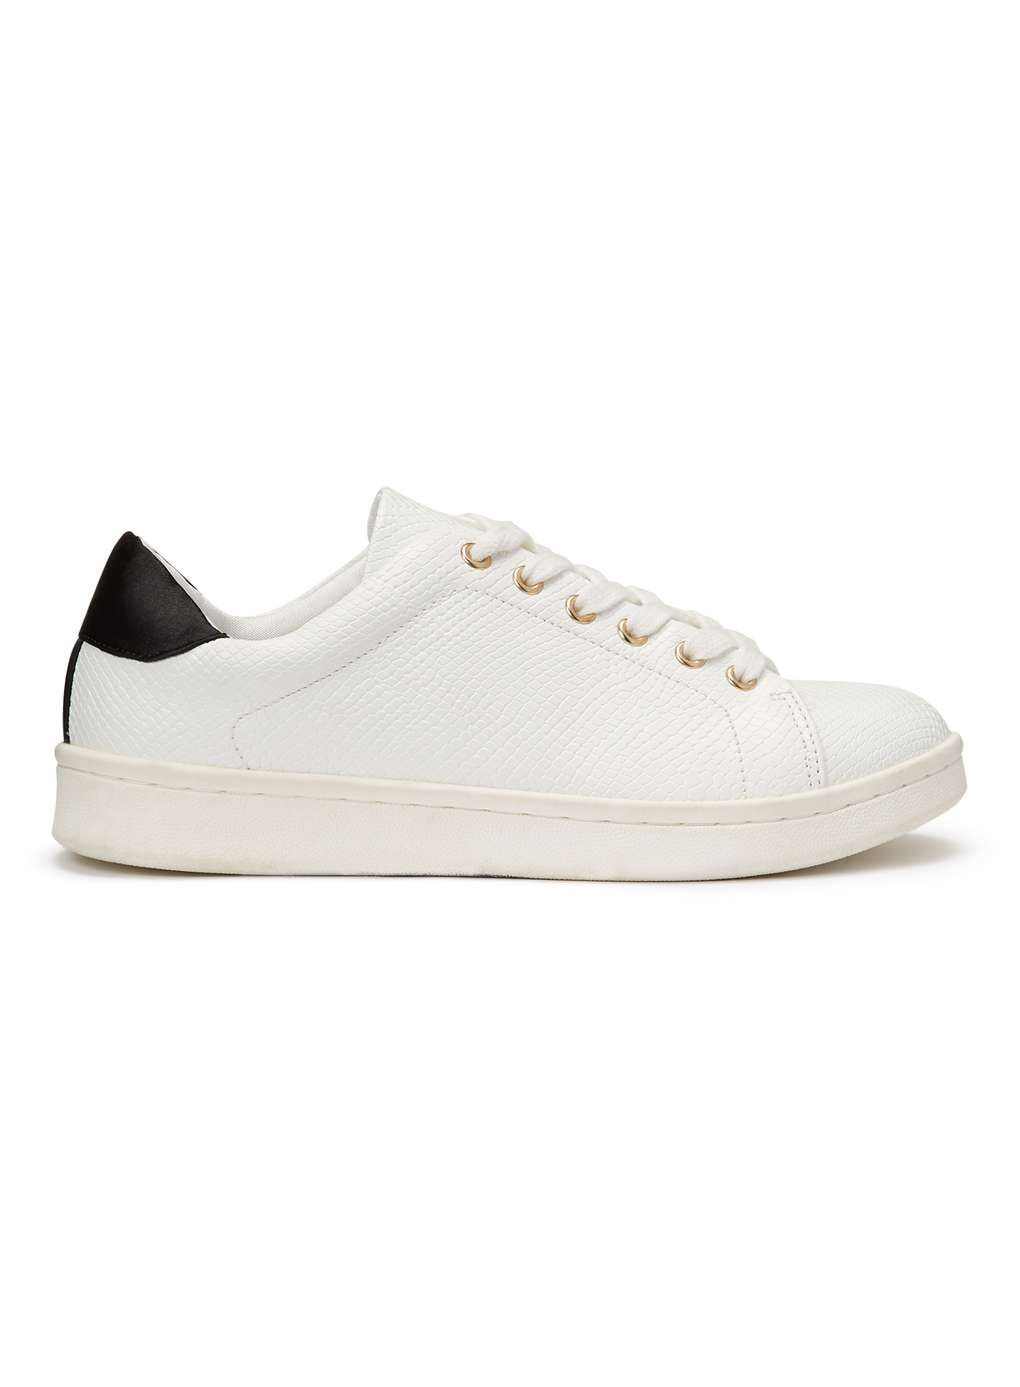 lace up trainers - White BOTH Shoes x5wjdJ